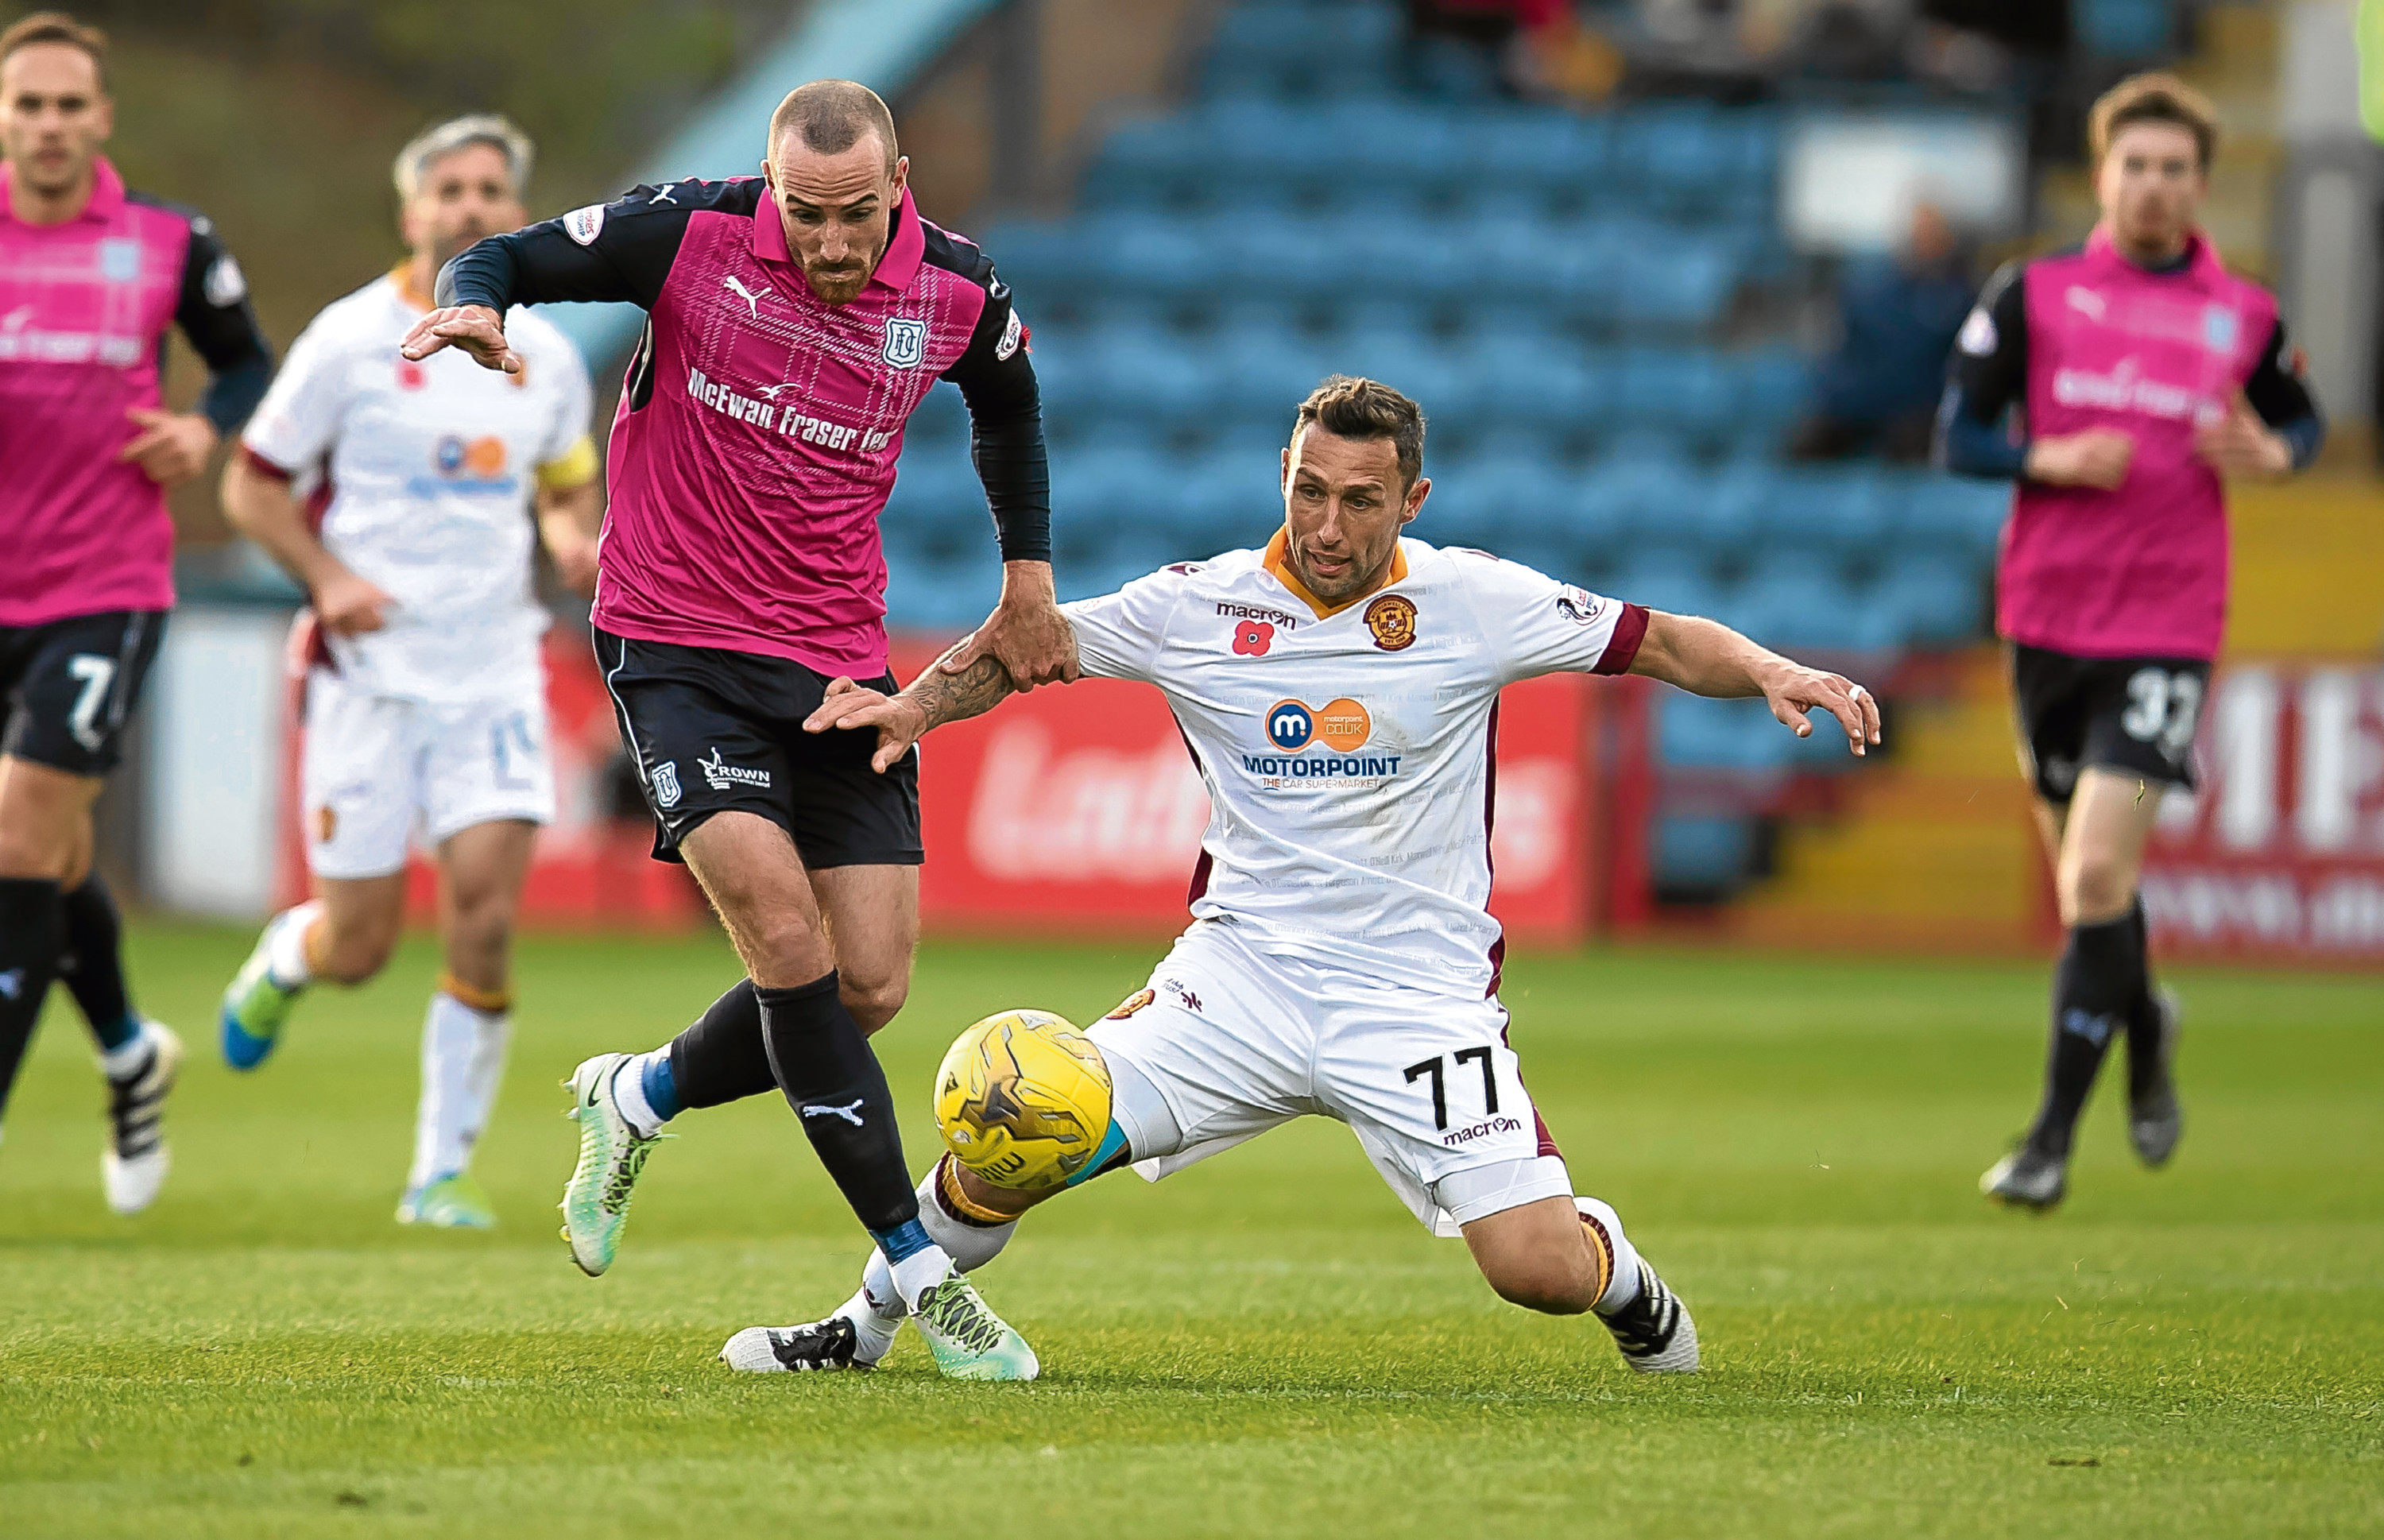 Dundee midfielder James Vincent rides the challenge from Motherwell's Scott McDonald in Saturday's 2-0 win at Dens.